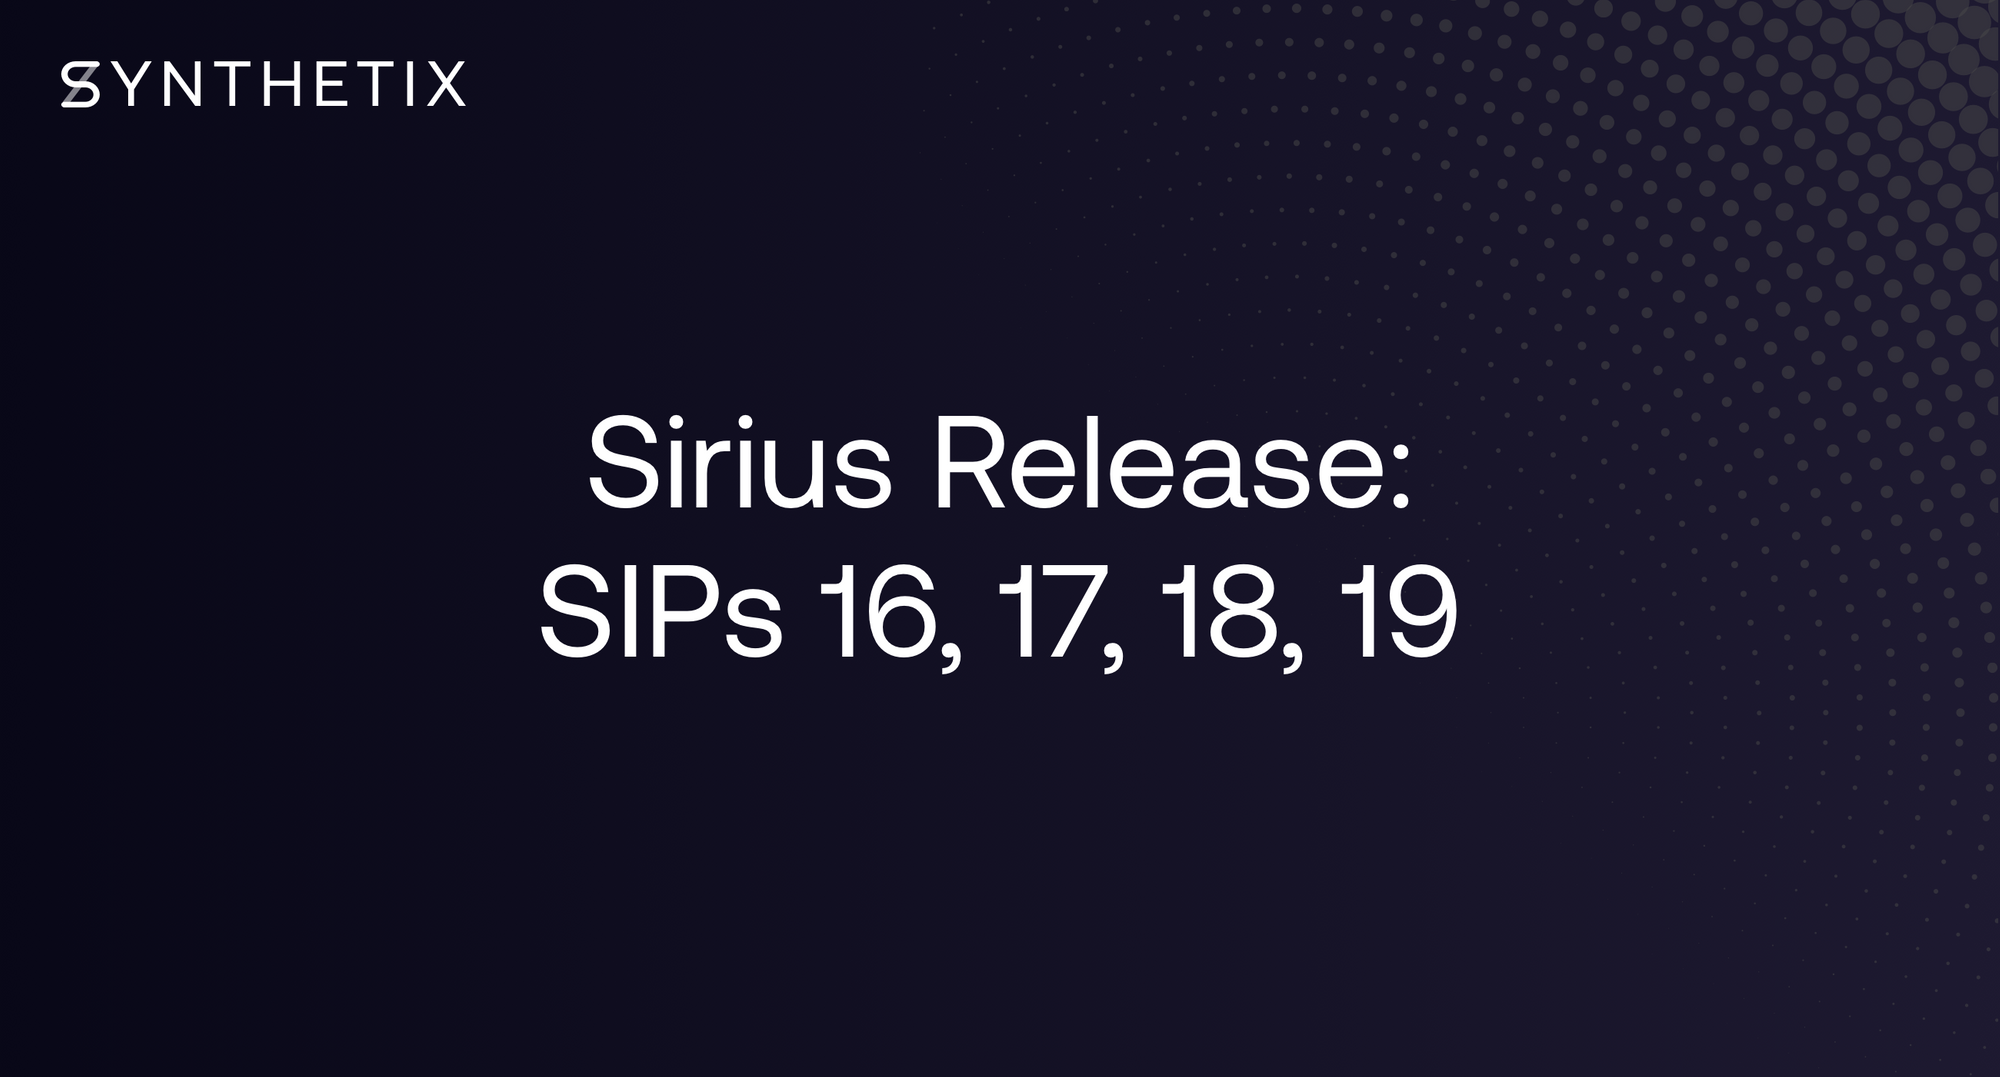 The Sirius Release is scheduled for Thursday, September 26 (AEST)